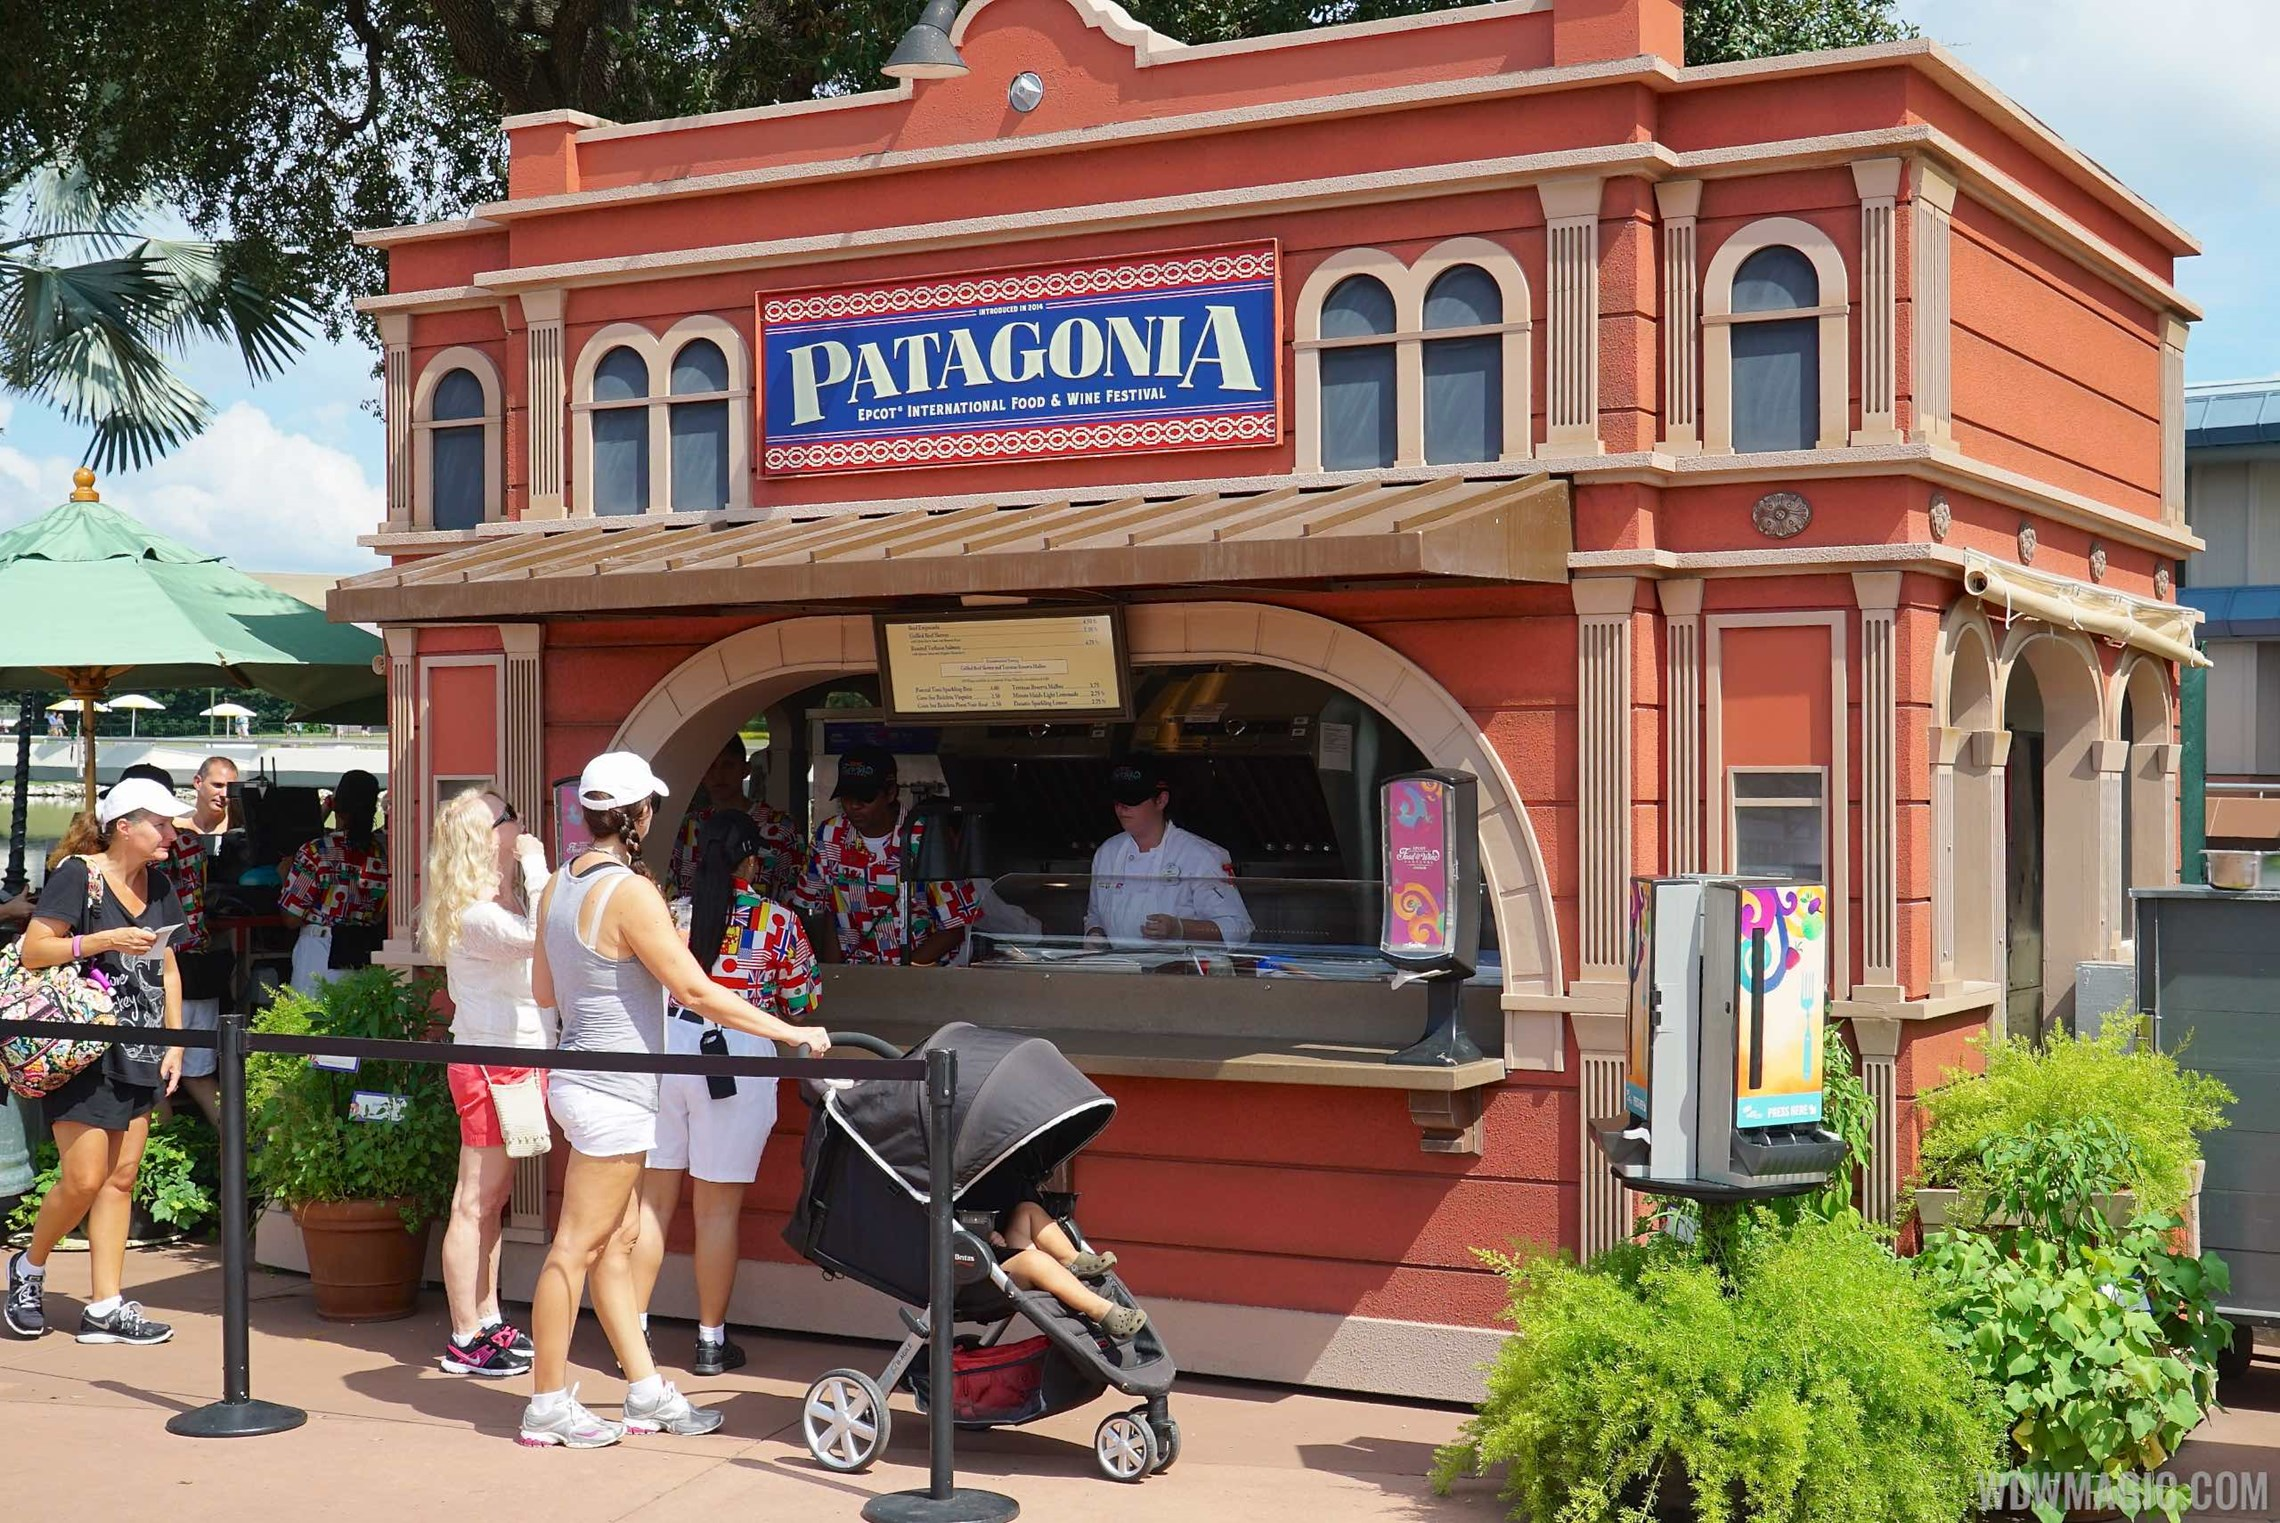 Patagonia Food and Wine Marketplace overview